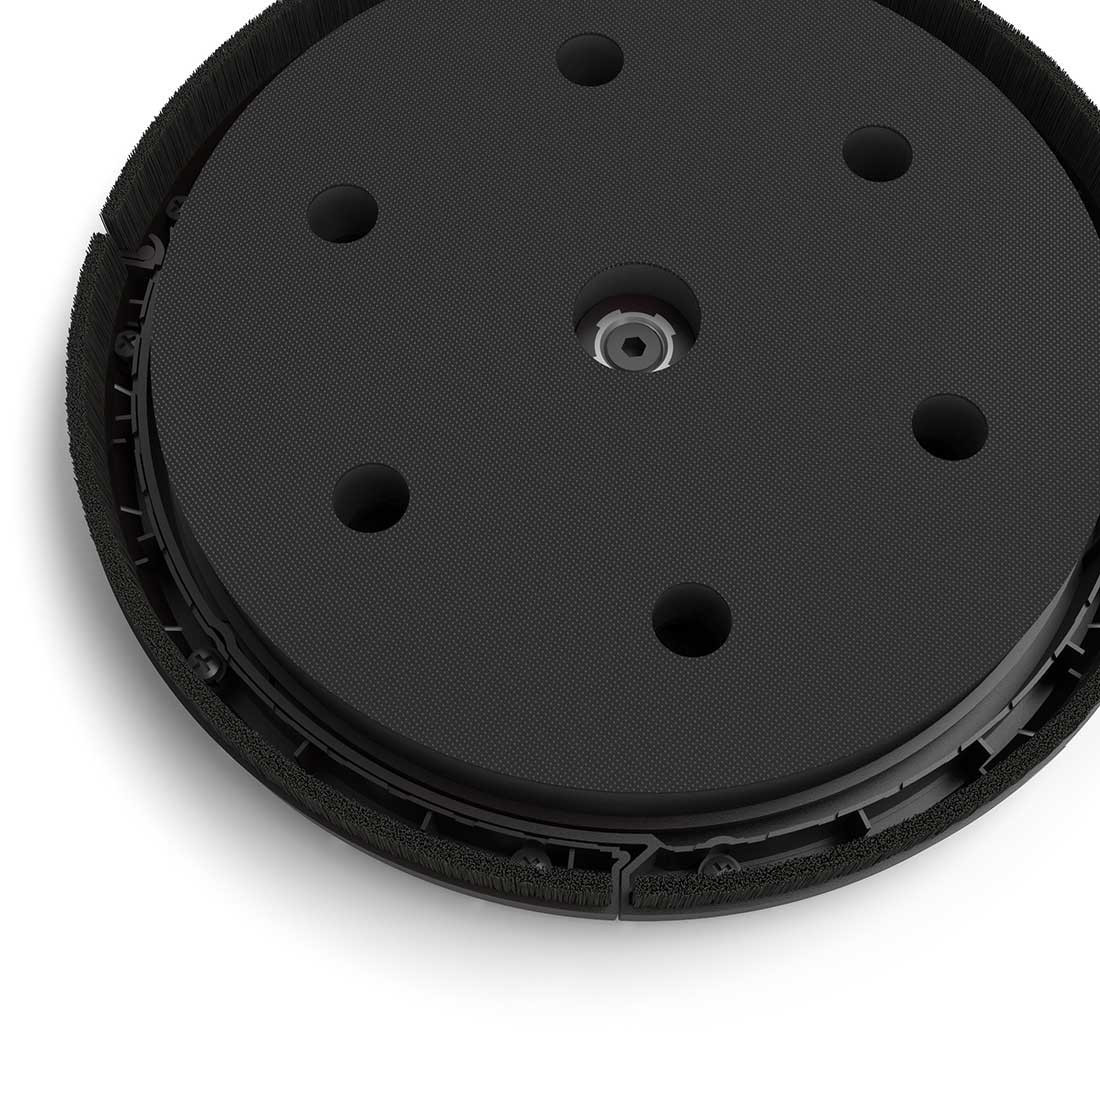 MENZER LHS 225 PRO VARIO  perforated sanding disc